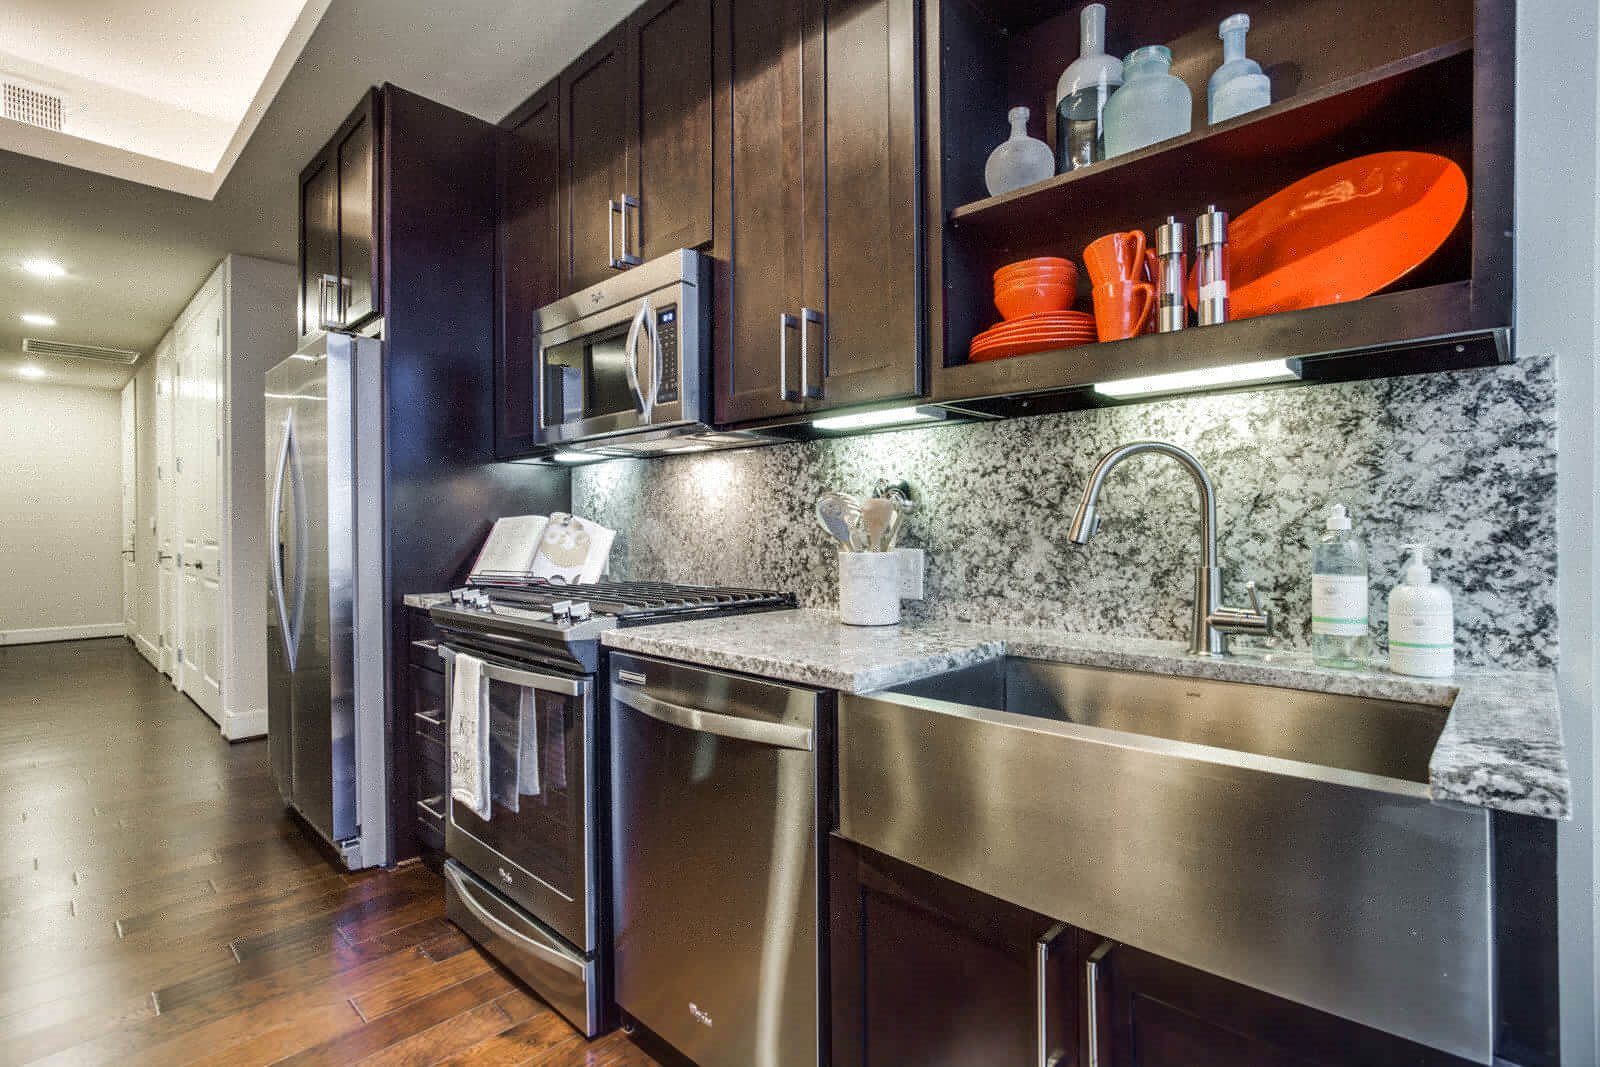 Upscale Stainless Steel Appliances at The Jordan by Windsor, 2355 Thomas Ave, Dallas